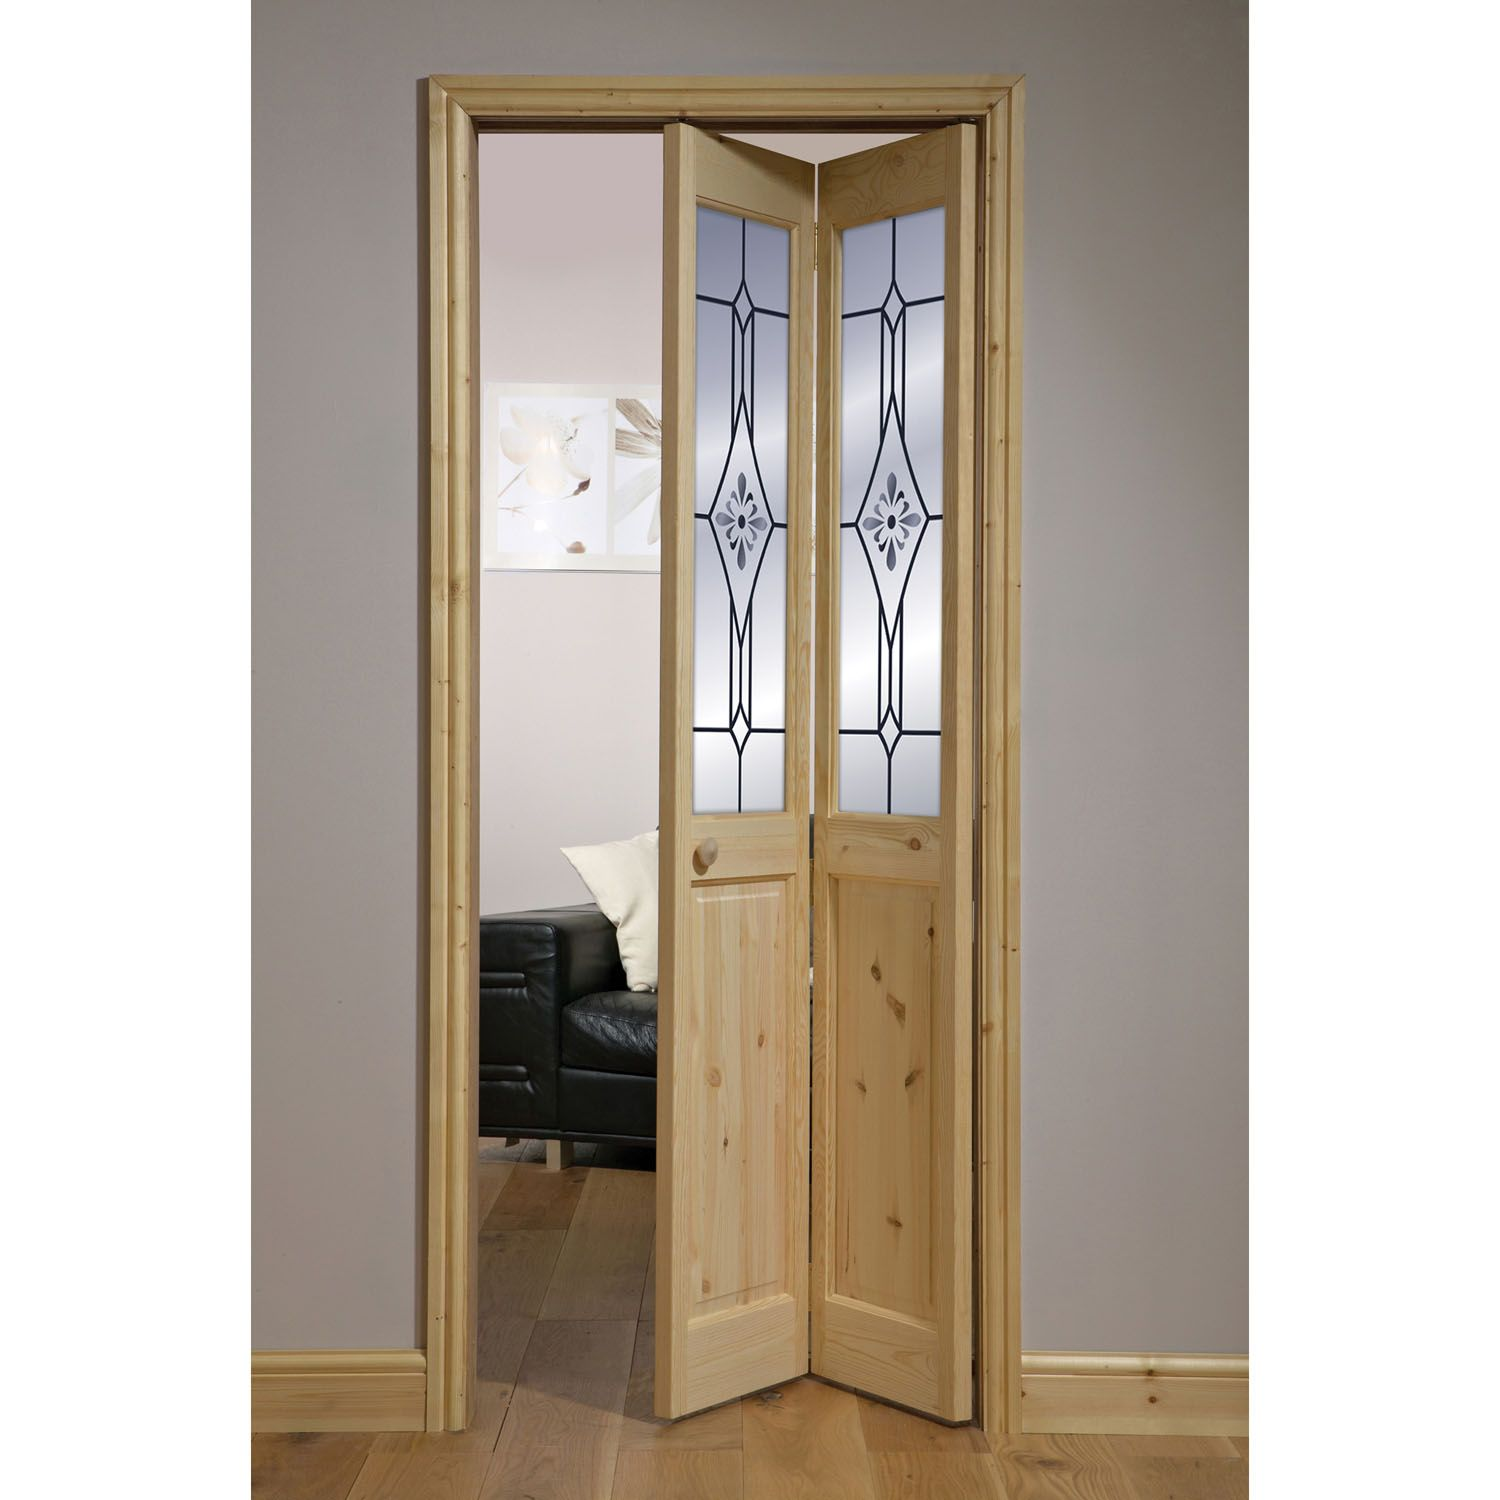 Accordion Bathroom Doors 18 inch interior french doors photo | door design | pinterest